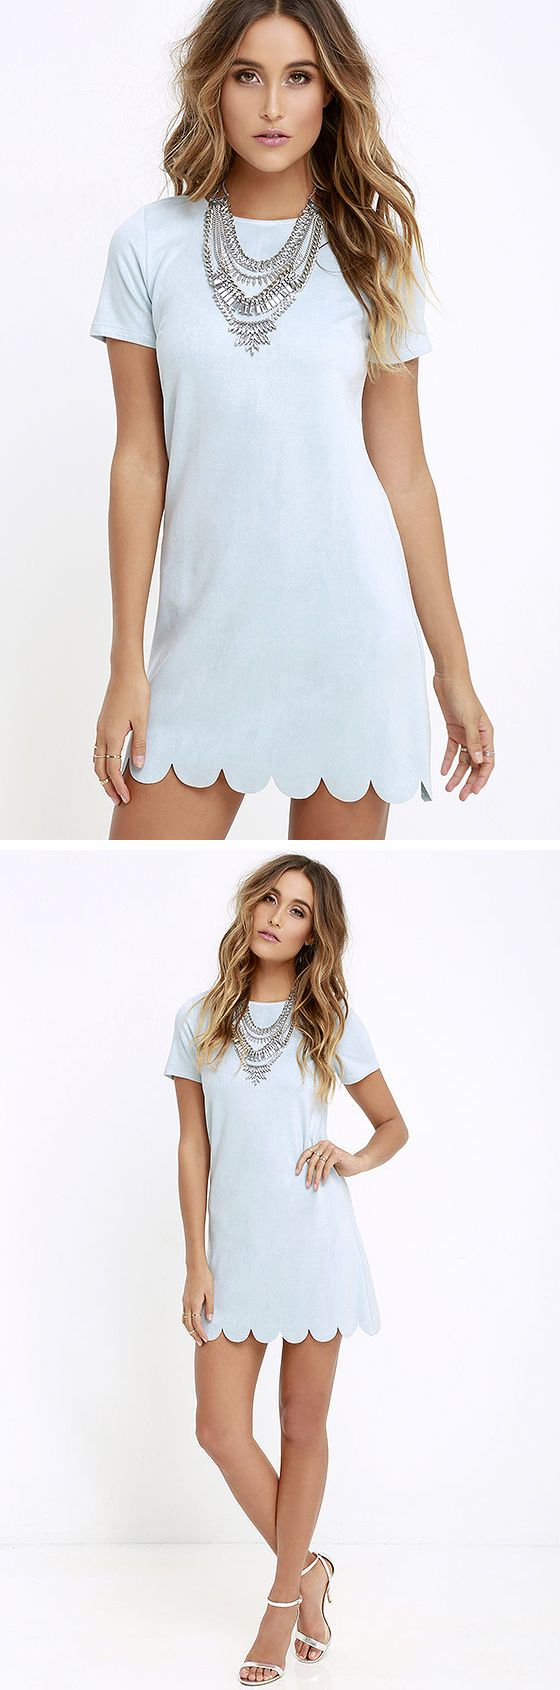 Light Blue Scalloped Dress